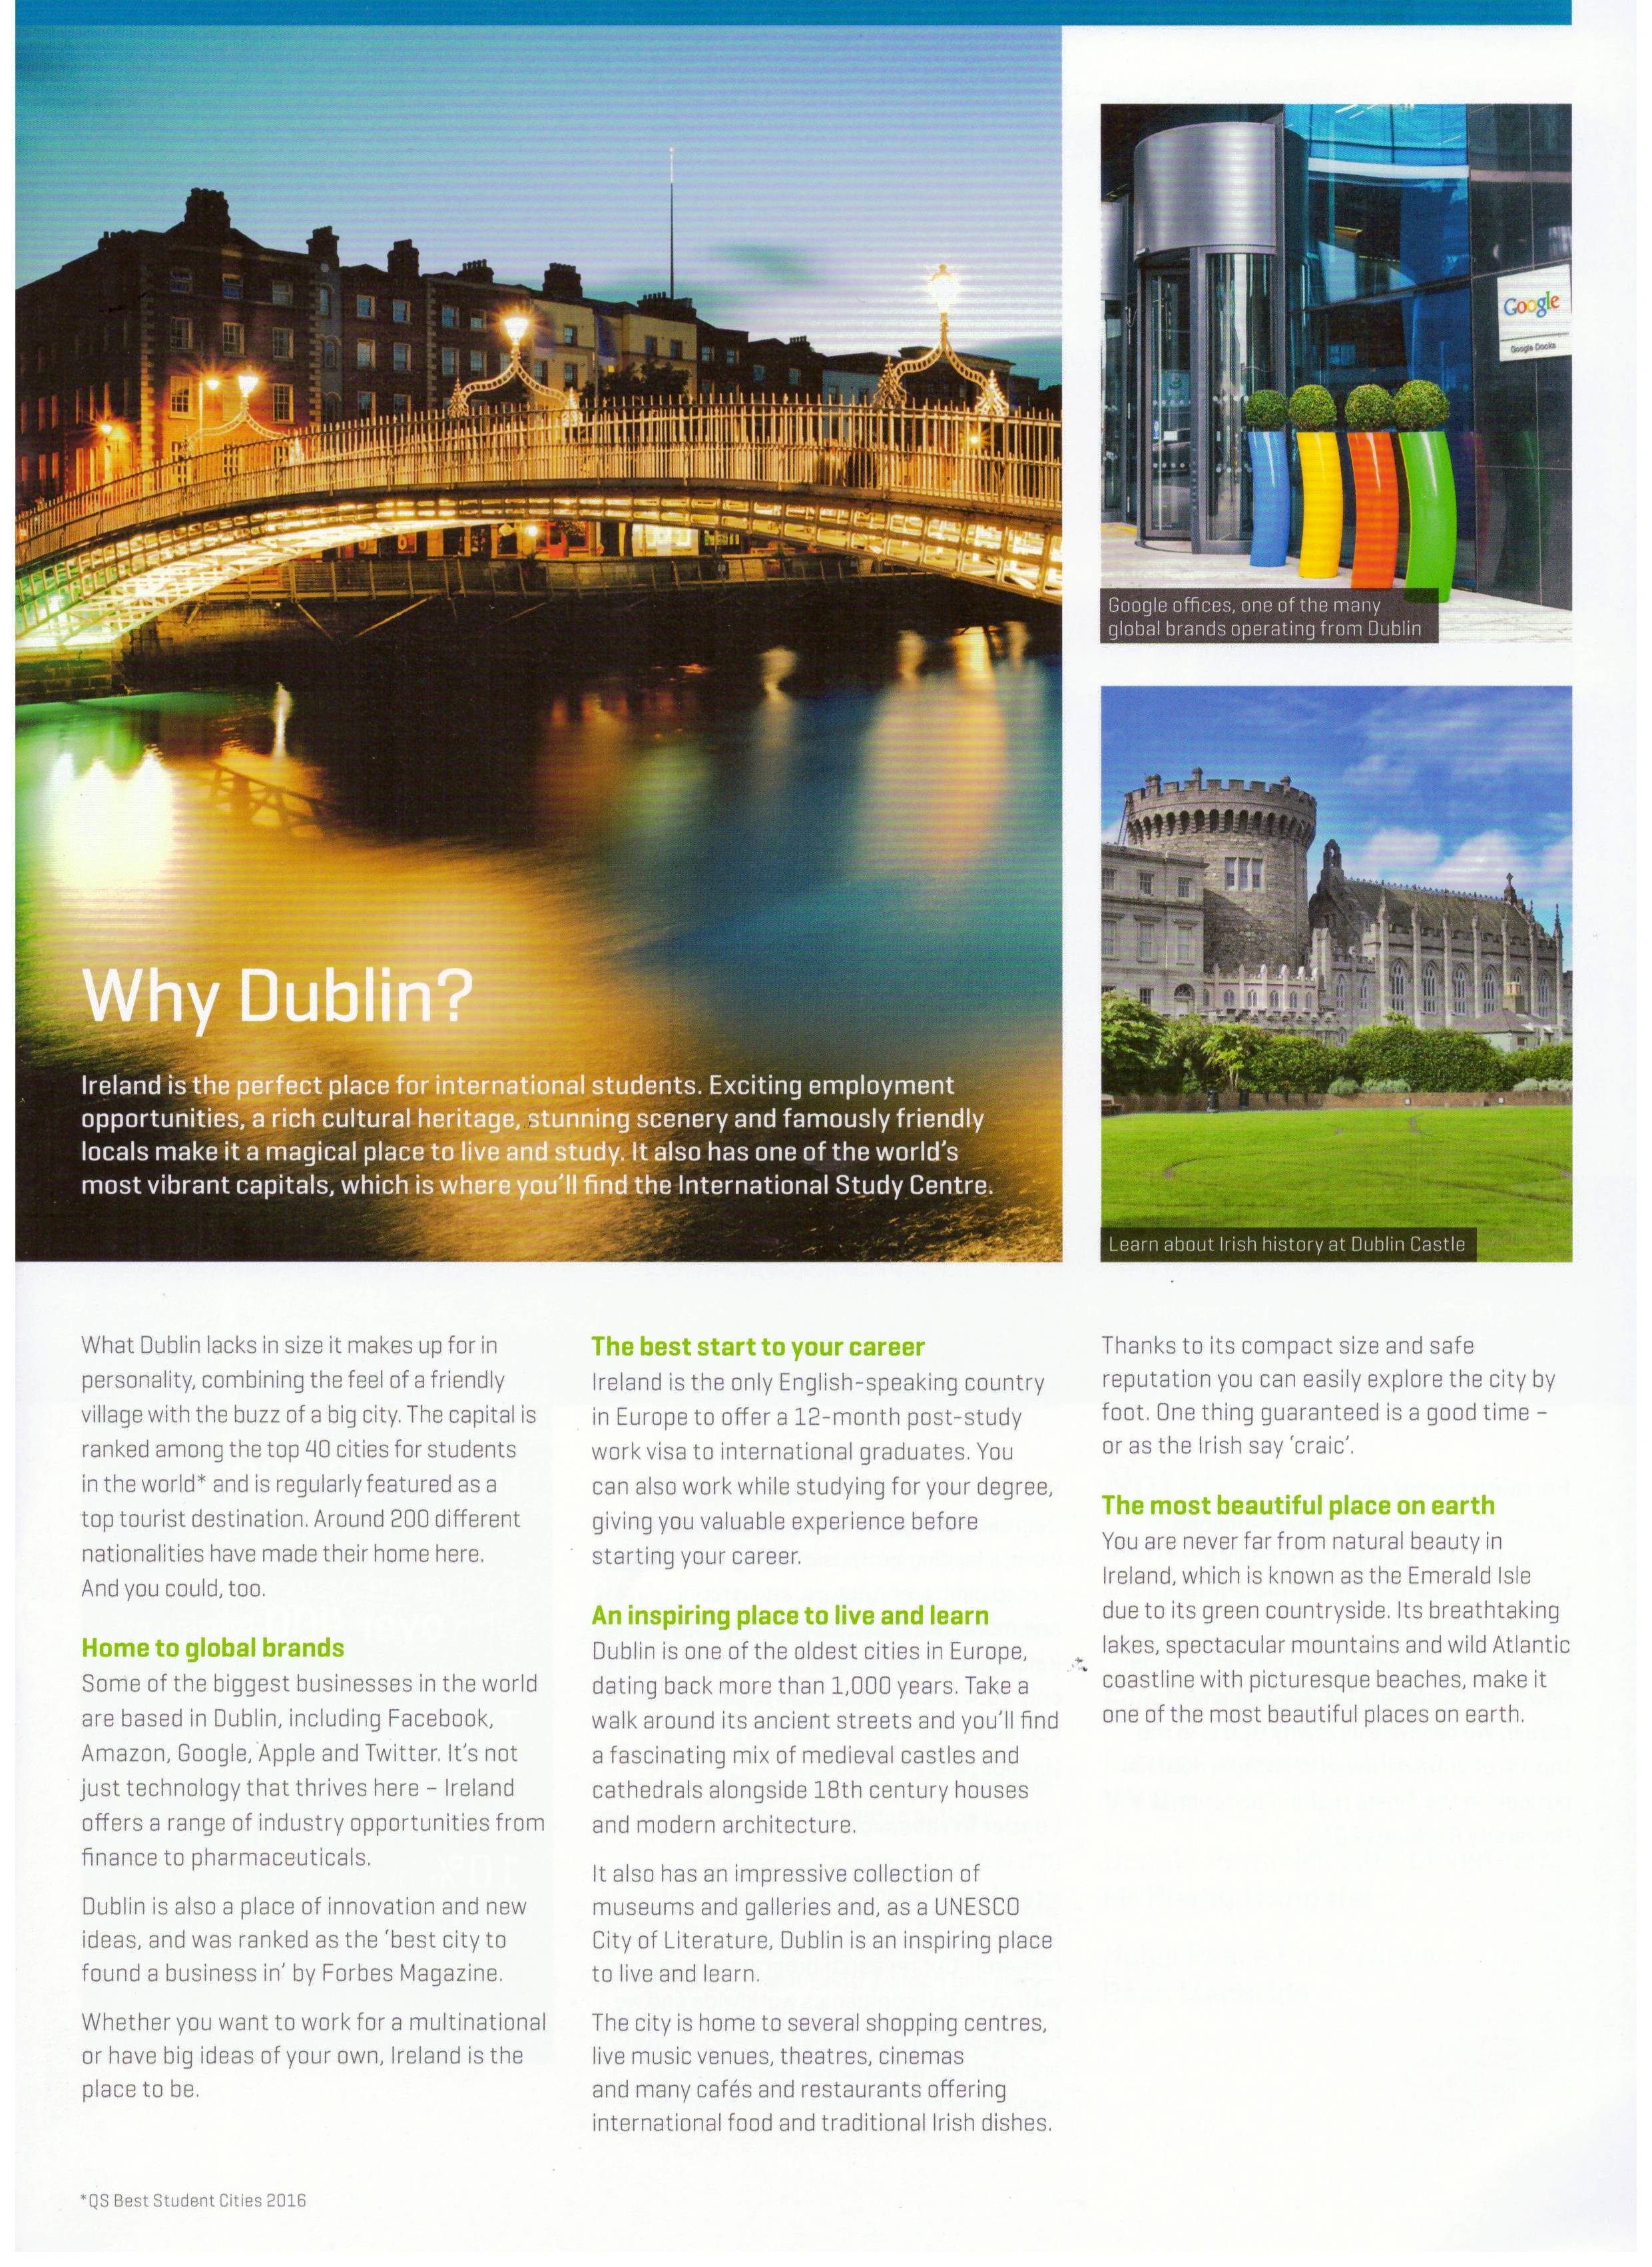 Why Study in Dublin?